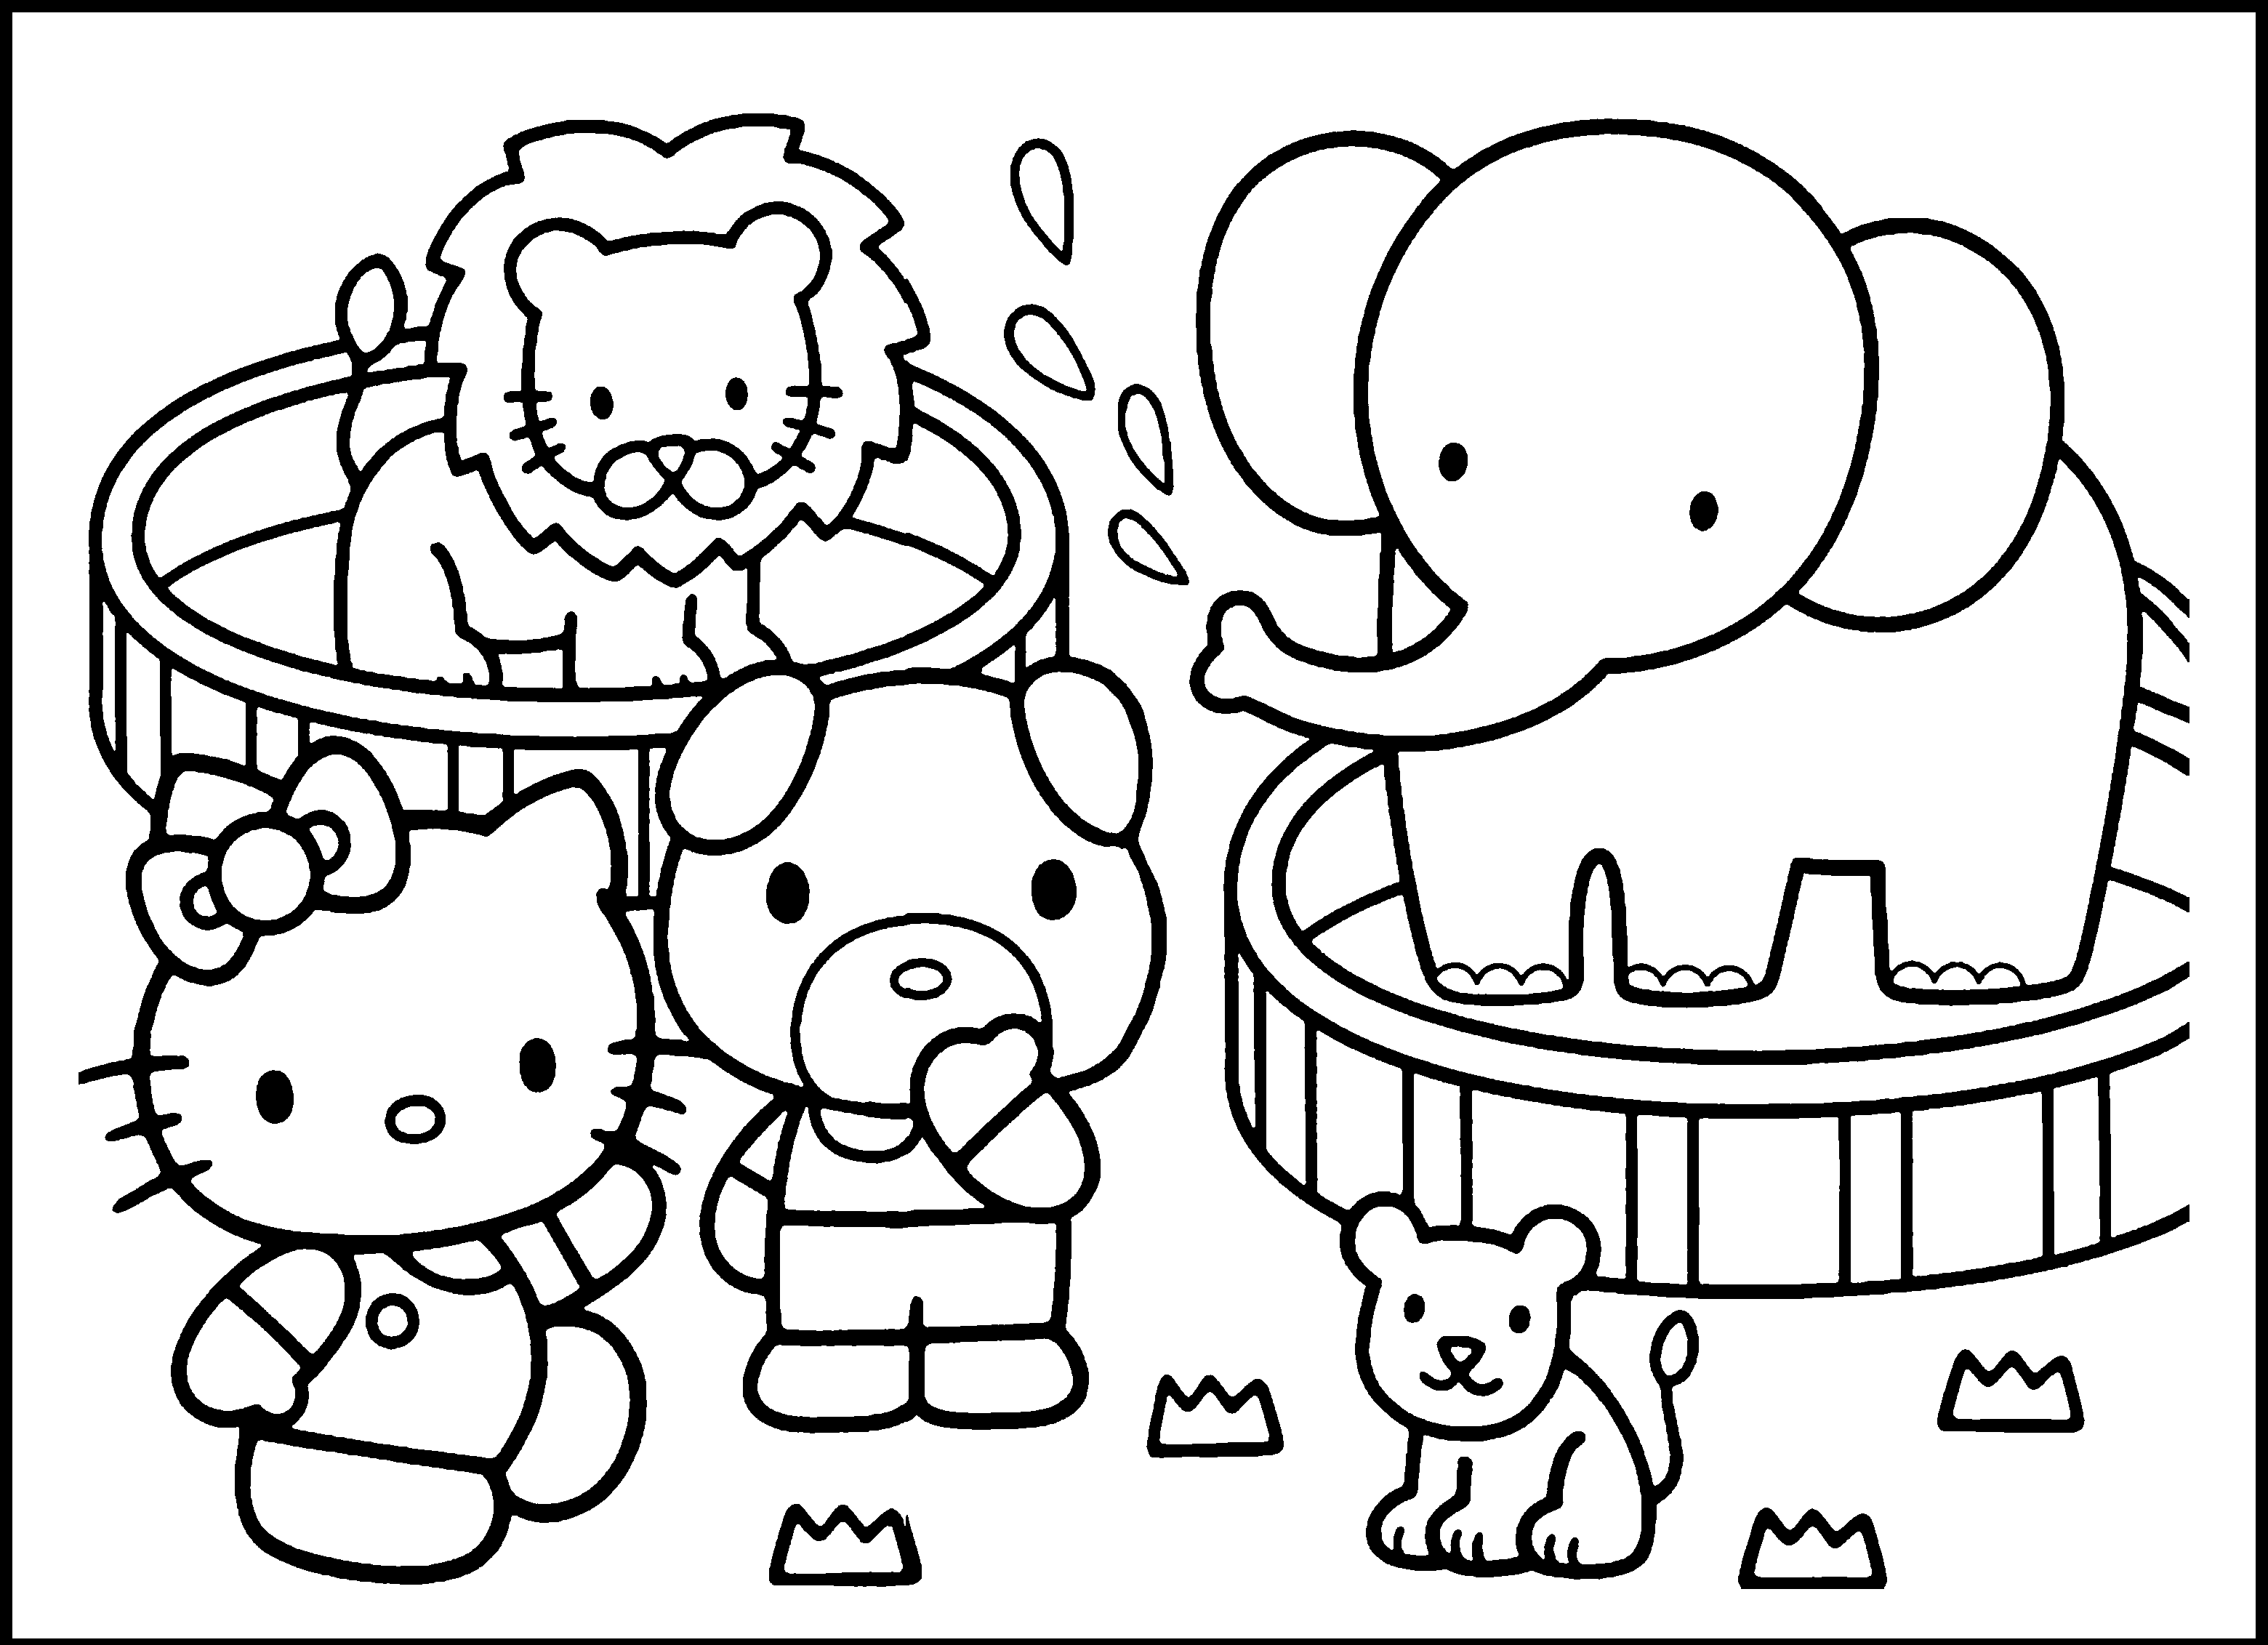 Preschool zoo coloring pages coloring home for Preschool coloring pages